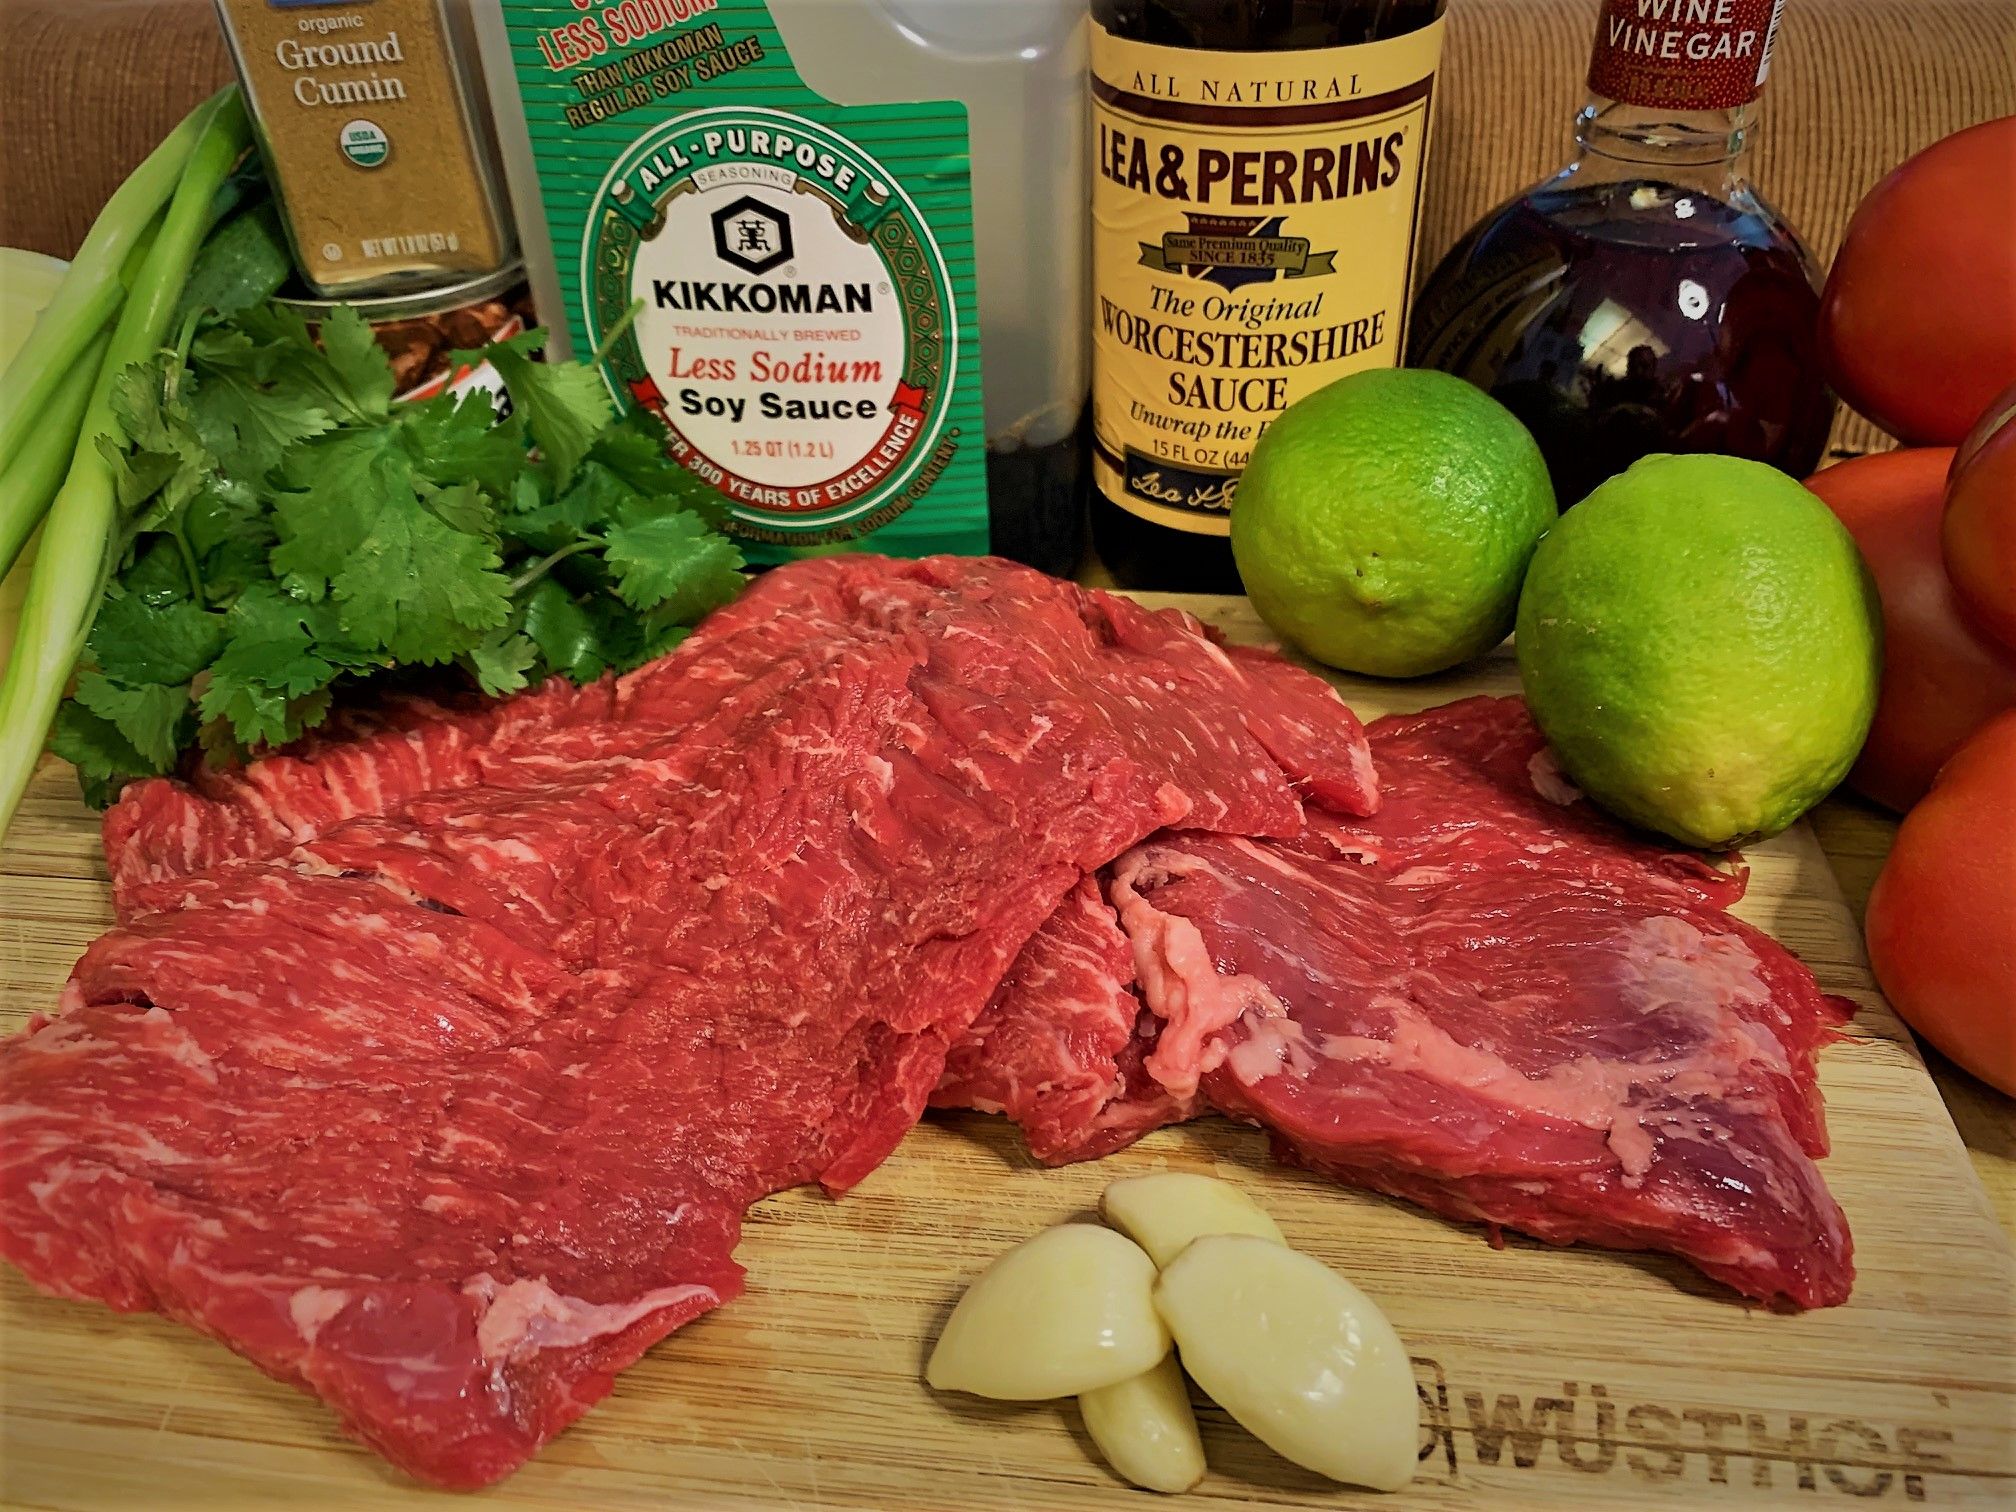 The ingredients for our Carne Asada Spring Rolls